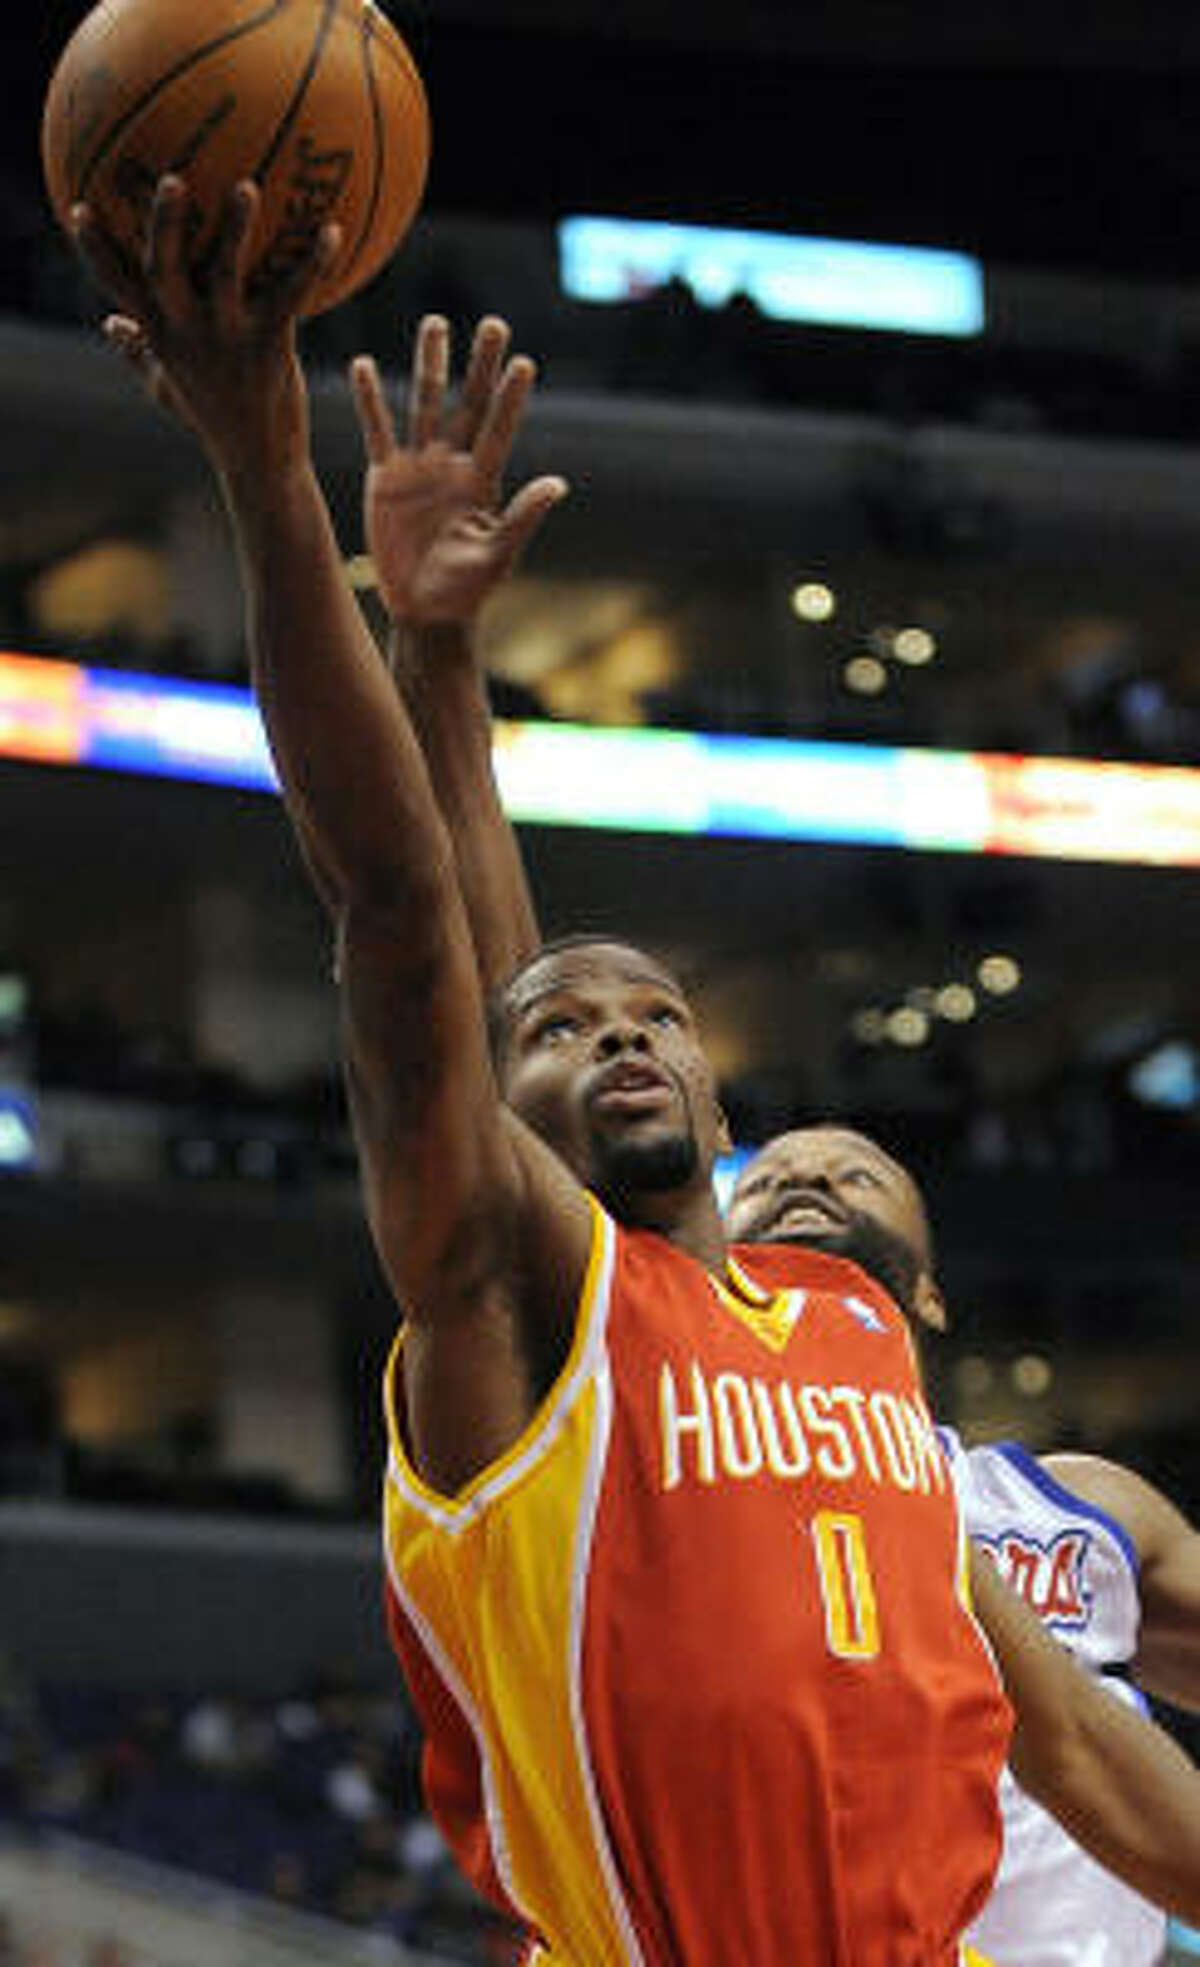 Rockets guard Aaron Brooks goes up for a shot as Clippers guard Baron Davis defends during the first half.